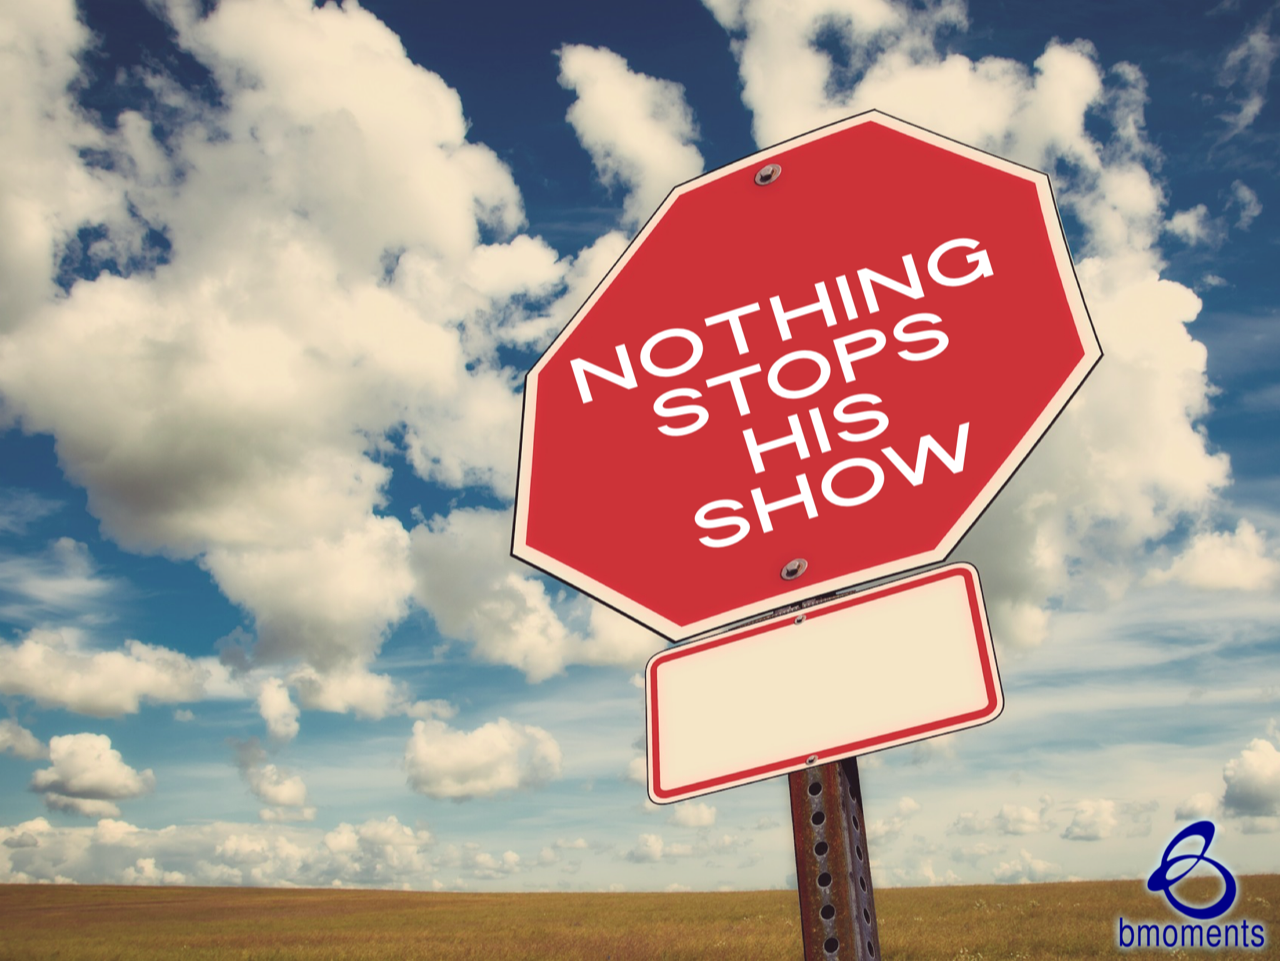 Nothing Will Stop God's Show